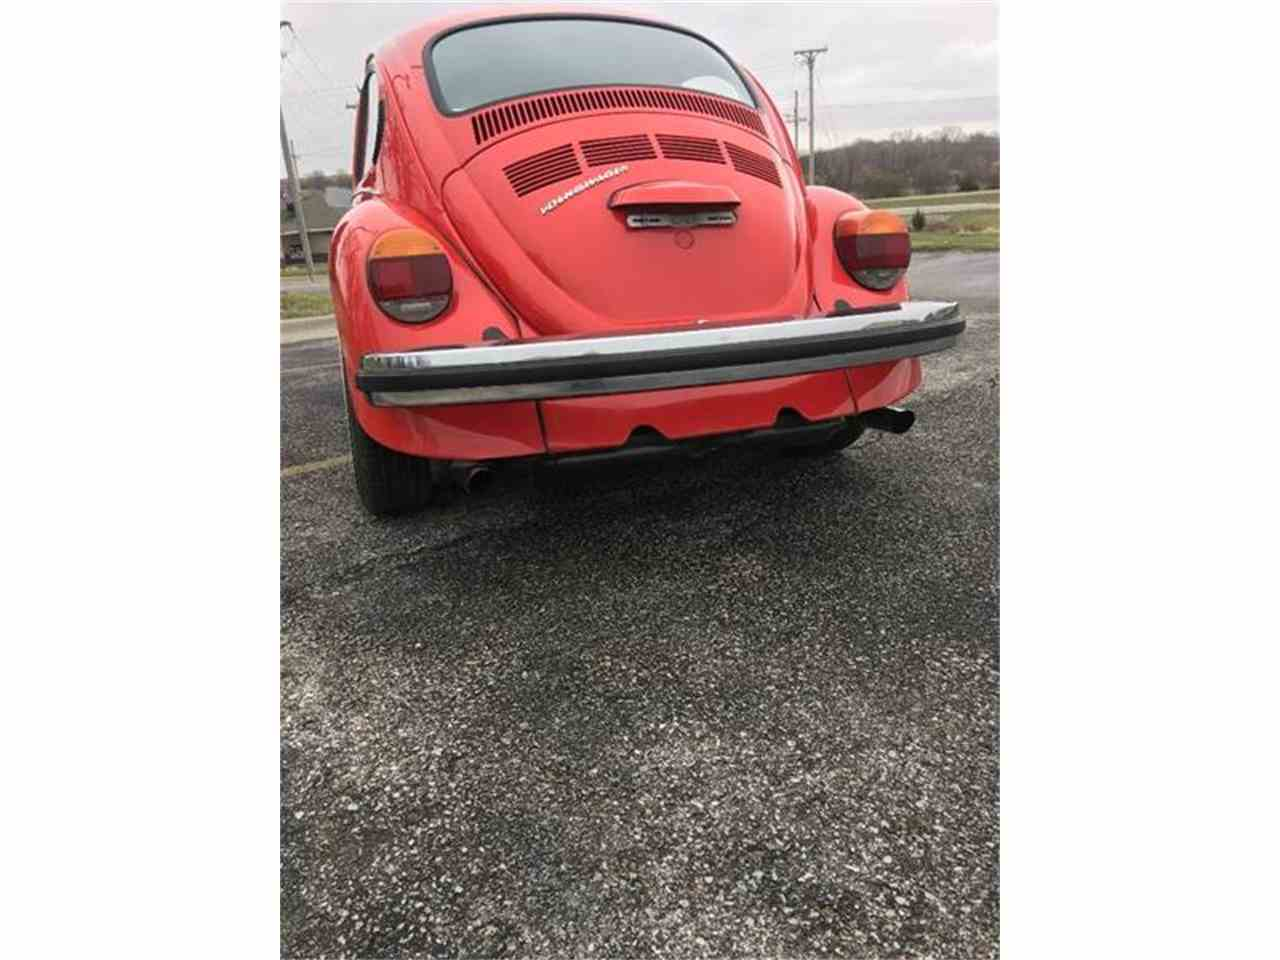 Large Picture of 1974 Volkswagen Beetle located in Iowa - $12,500.00 - MBL4